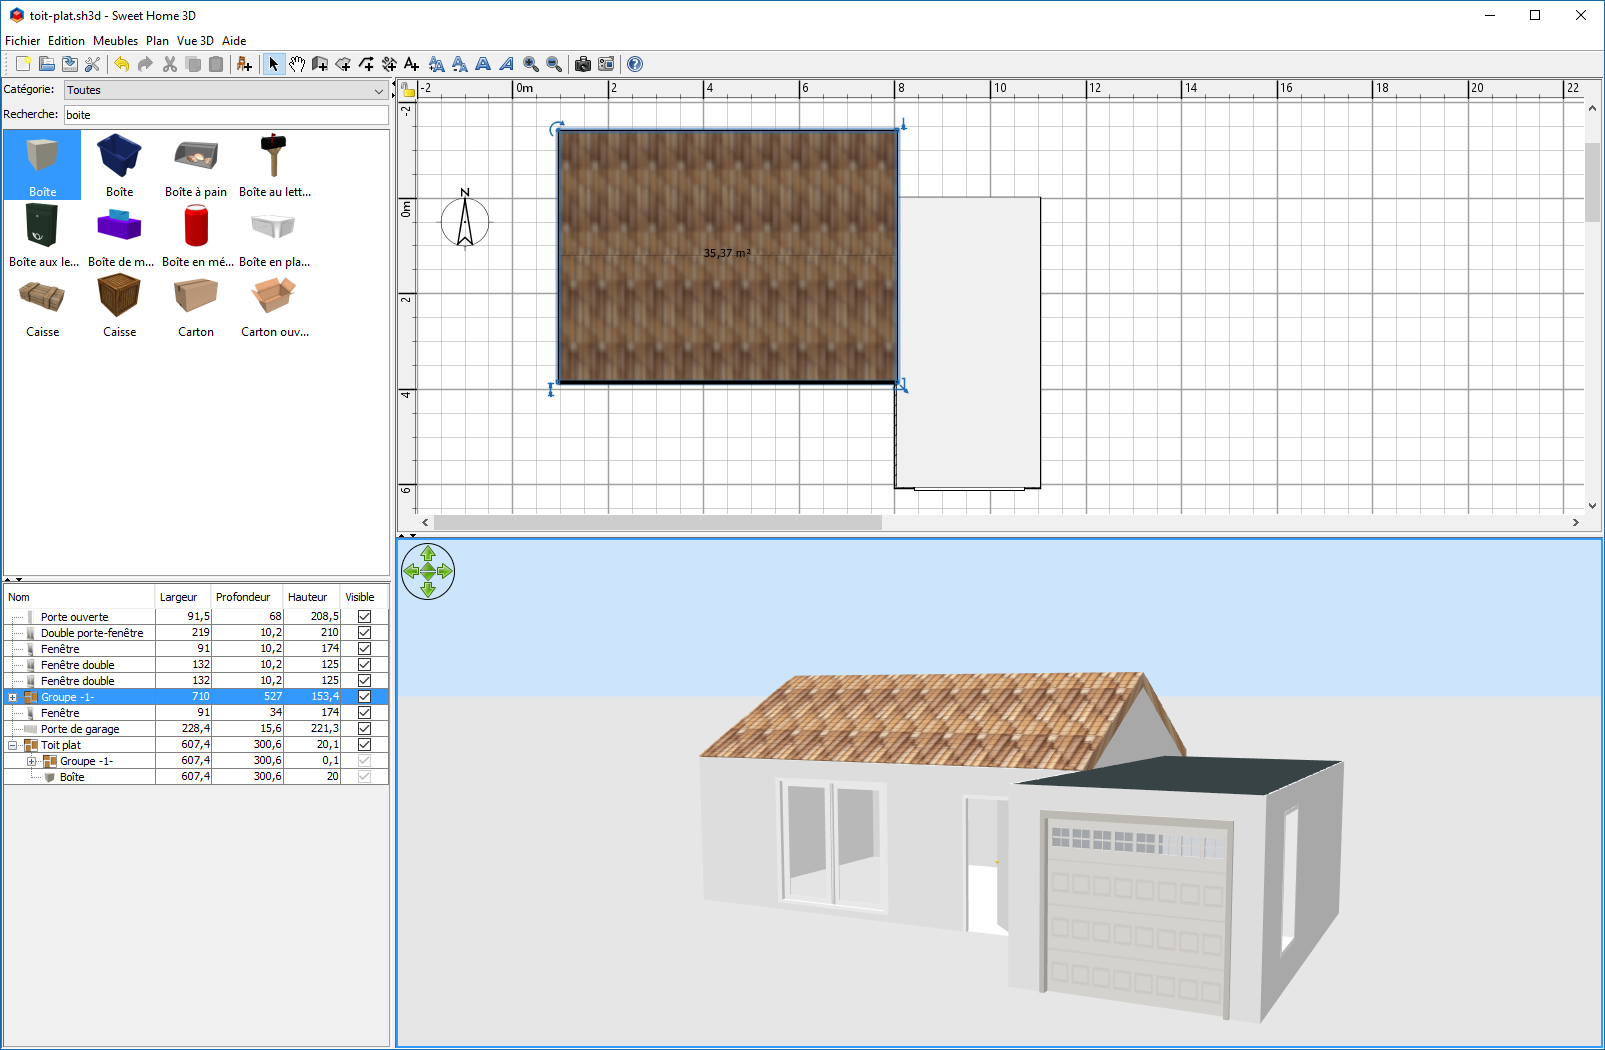 Comment faire un toit plat dans sweet home 3d for Modele maison sweet home 3d